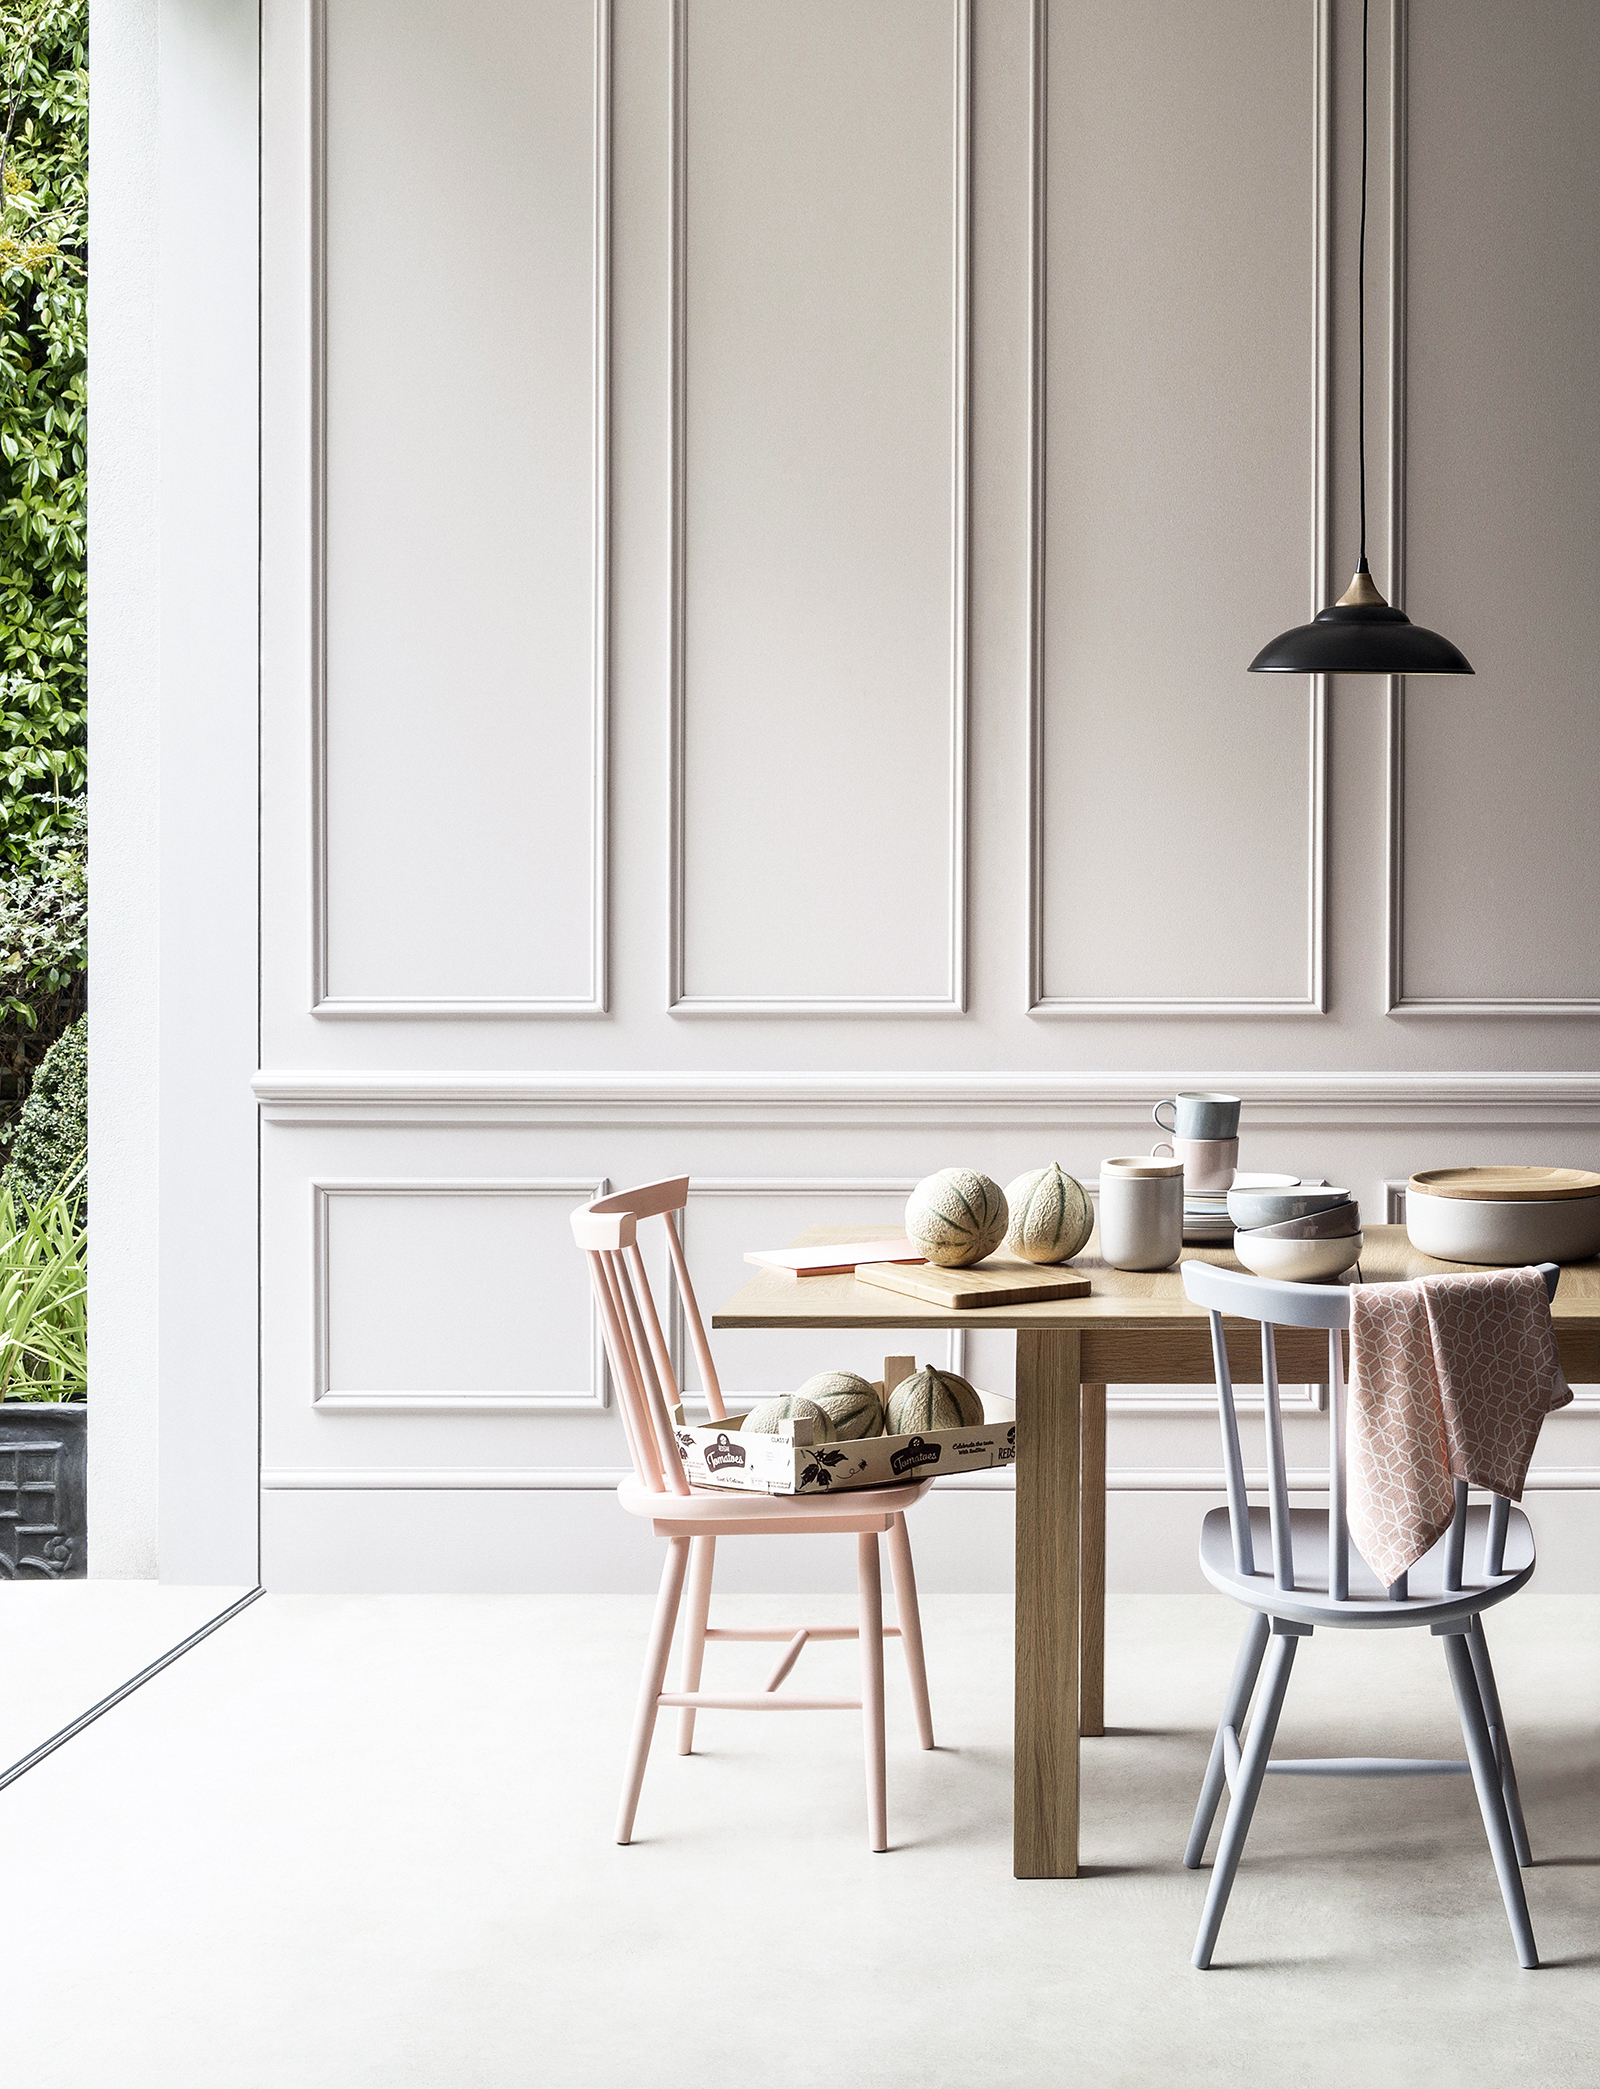 Marks And Spencer Dining Room Furniture Mamps Ss16 Collection At Home With Abby